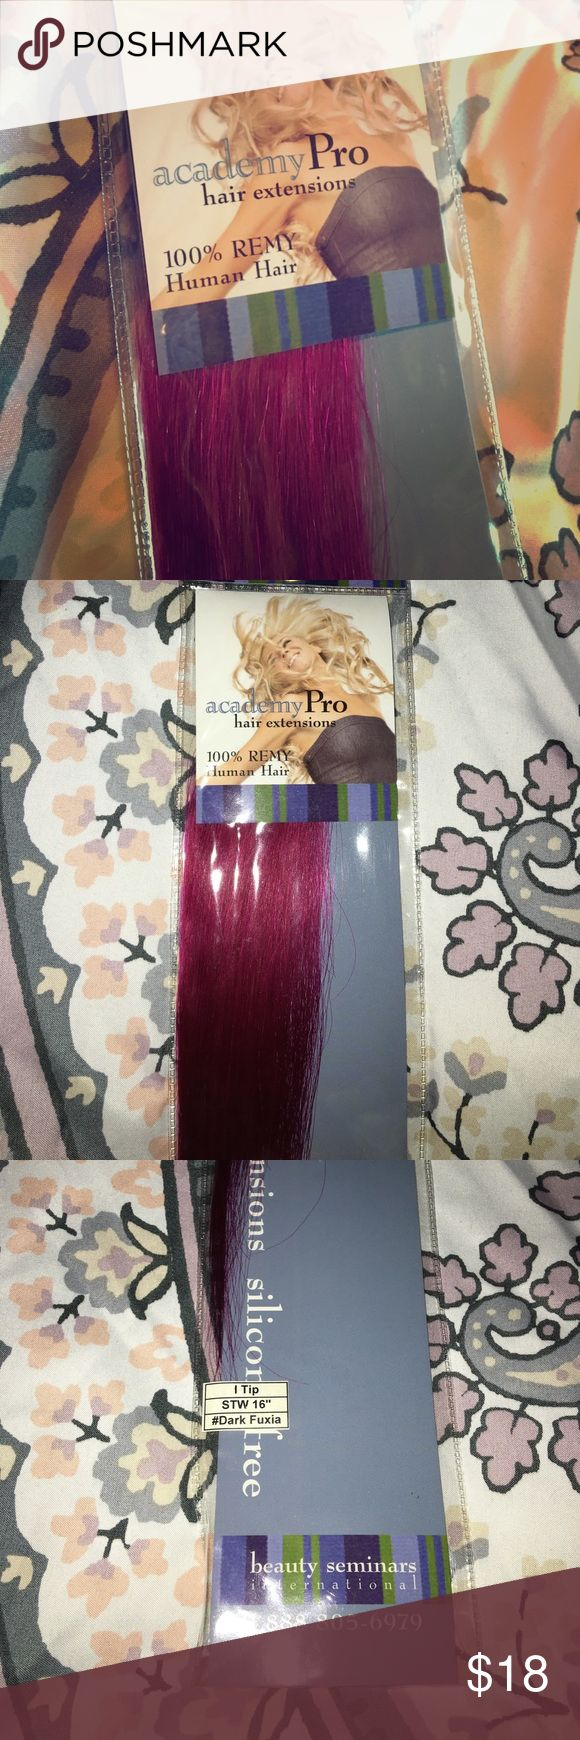 Academy Pro Hair Extensions 100% REMY human hair extensions. Silicone free. Dark Fuchsia. Adorable never used hair extensions. Great to add some fun into your hair without the commitment of dyeing your real hair pink. Makeup